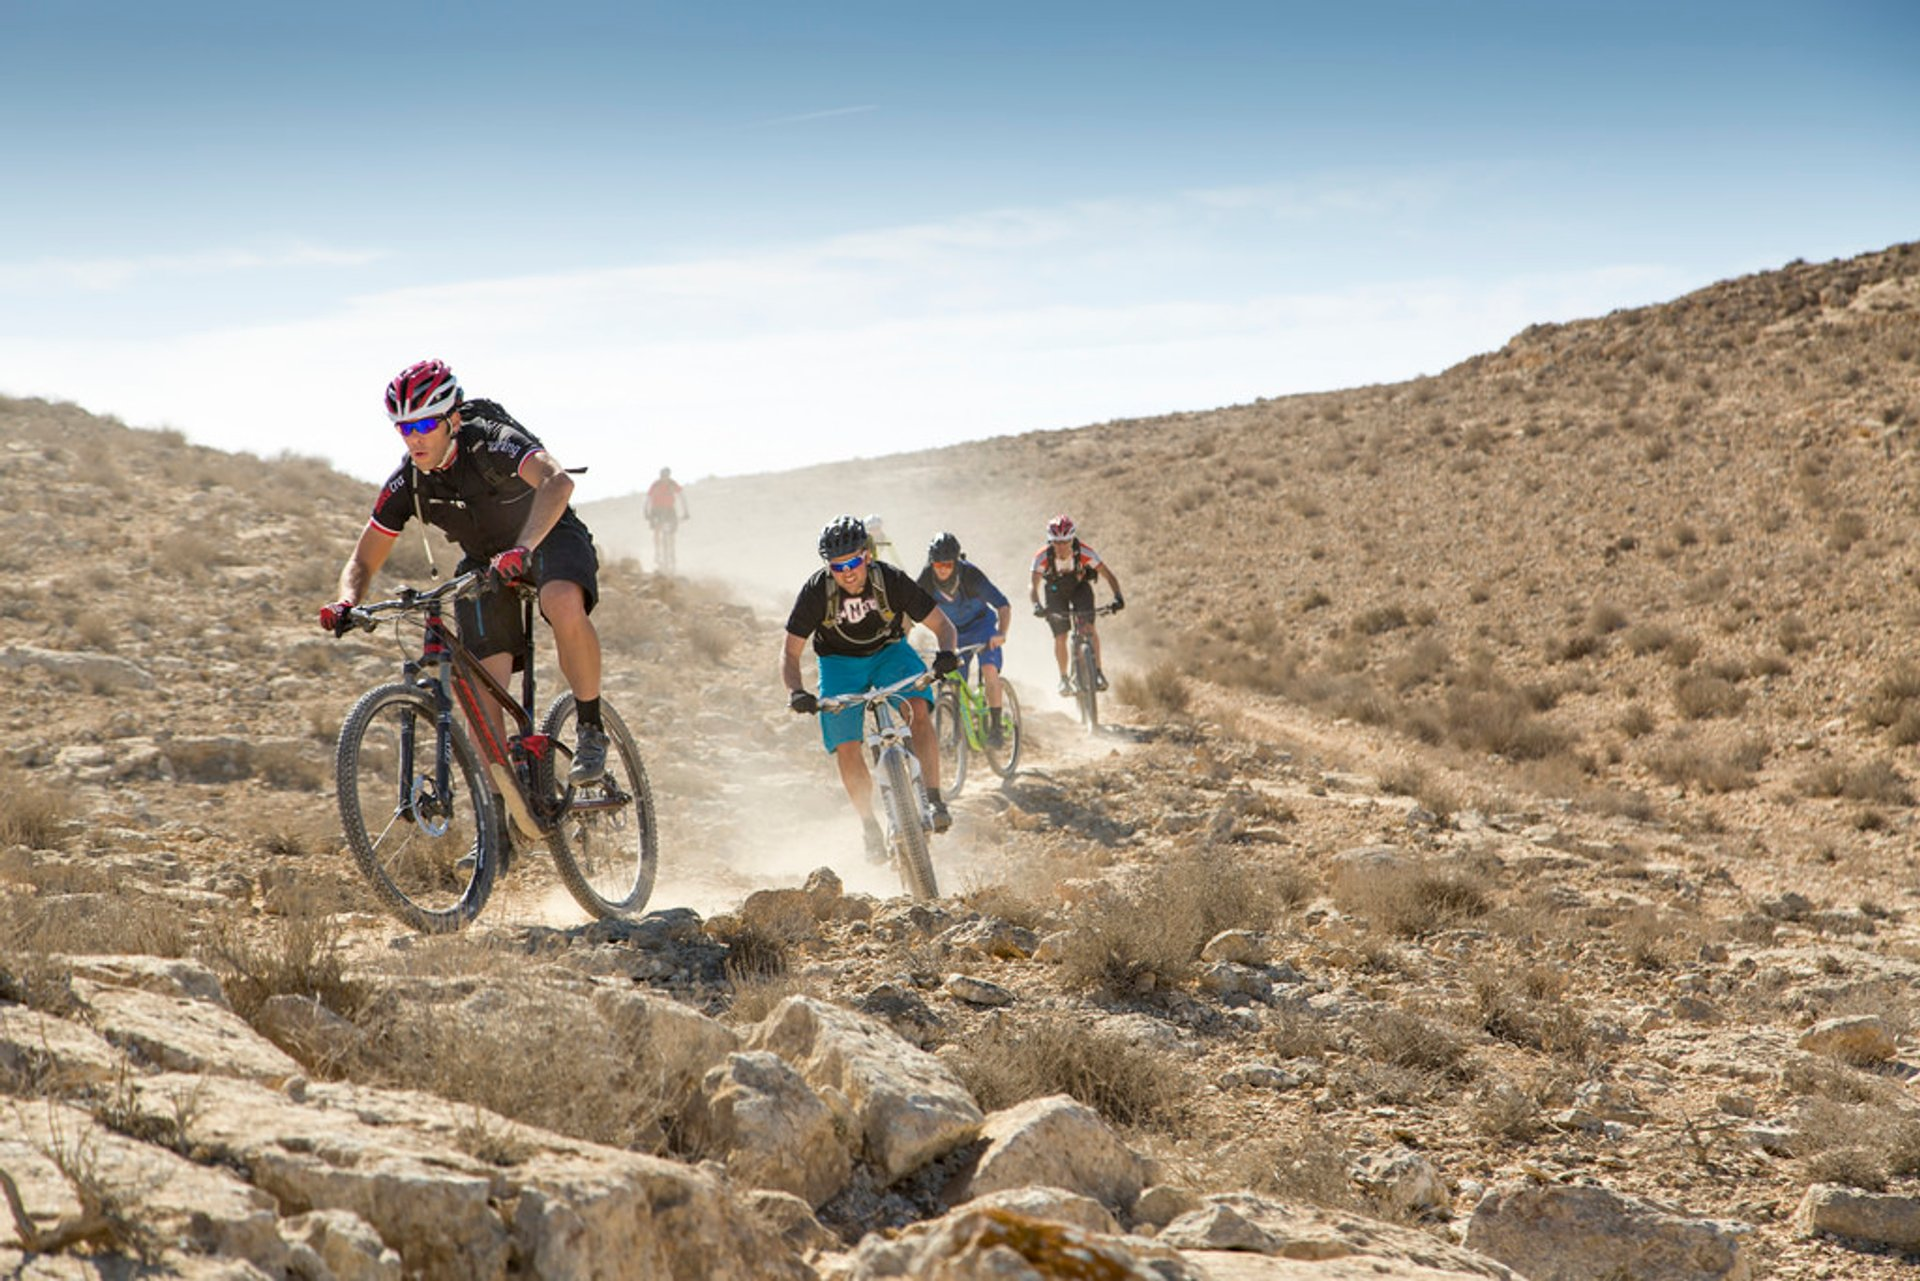 Bike riding in Negev–Arava region 2020